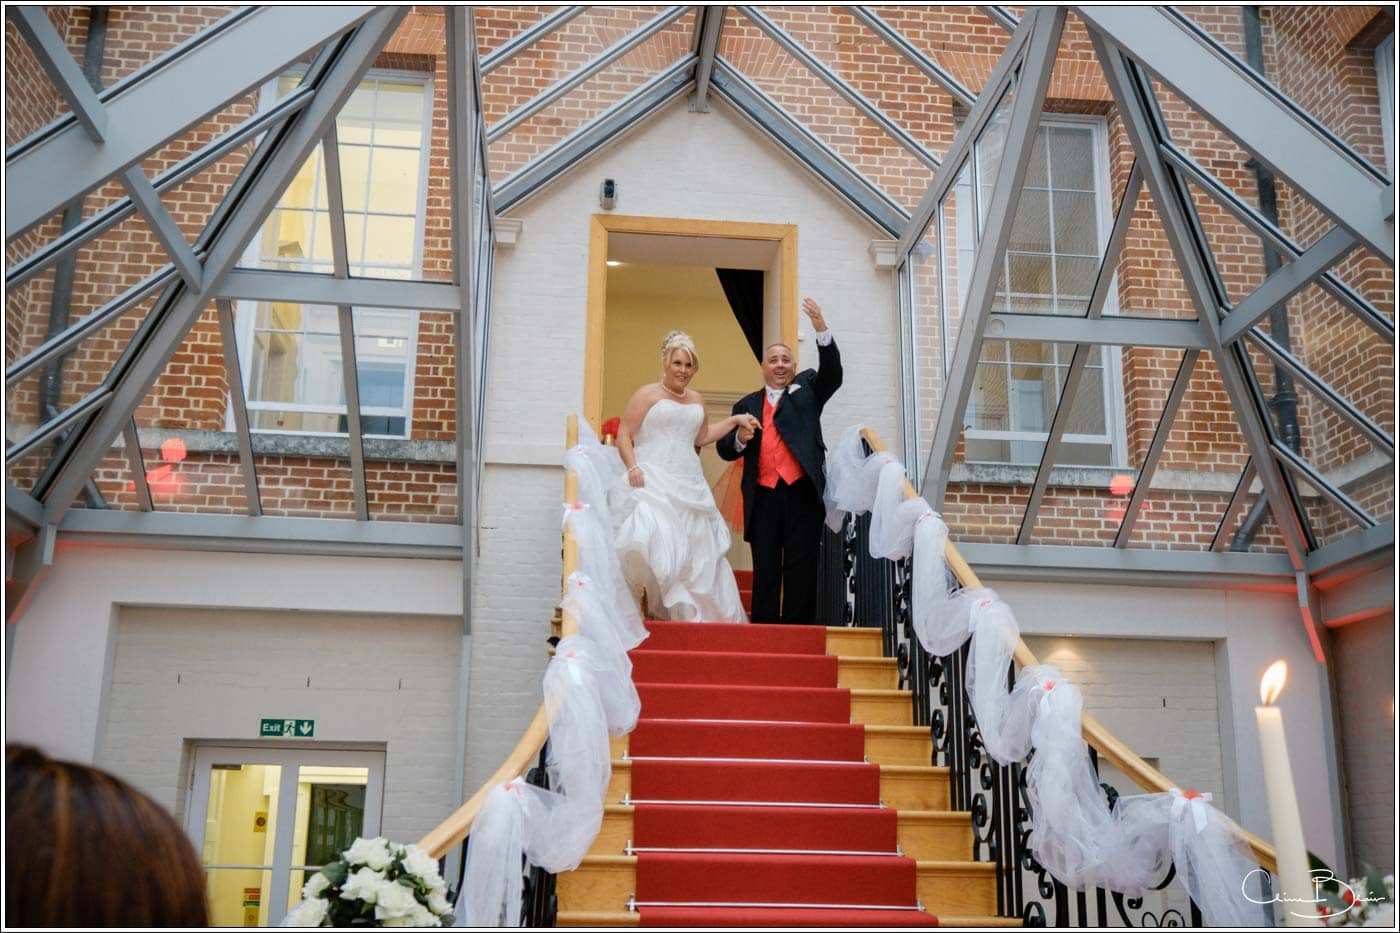 Bride and groom descending their stairs for their Botleys Mansion wedding reception